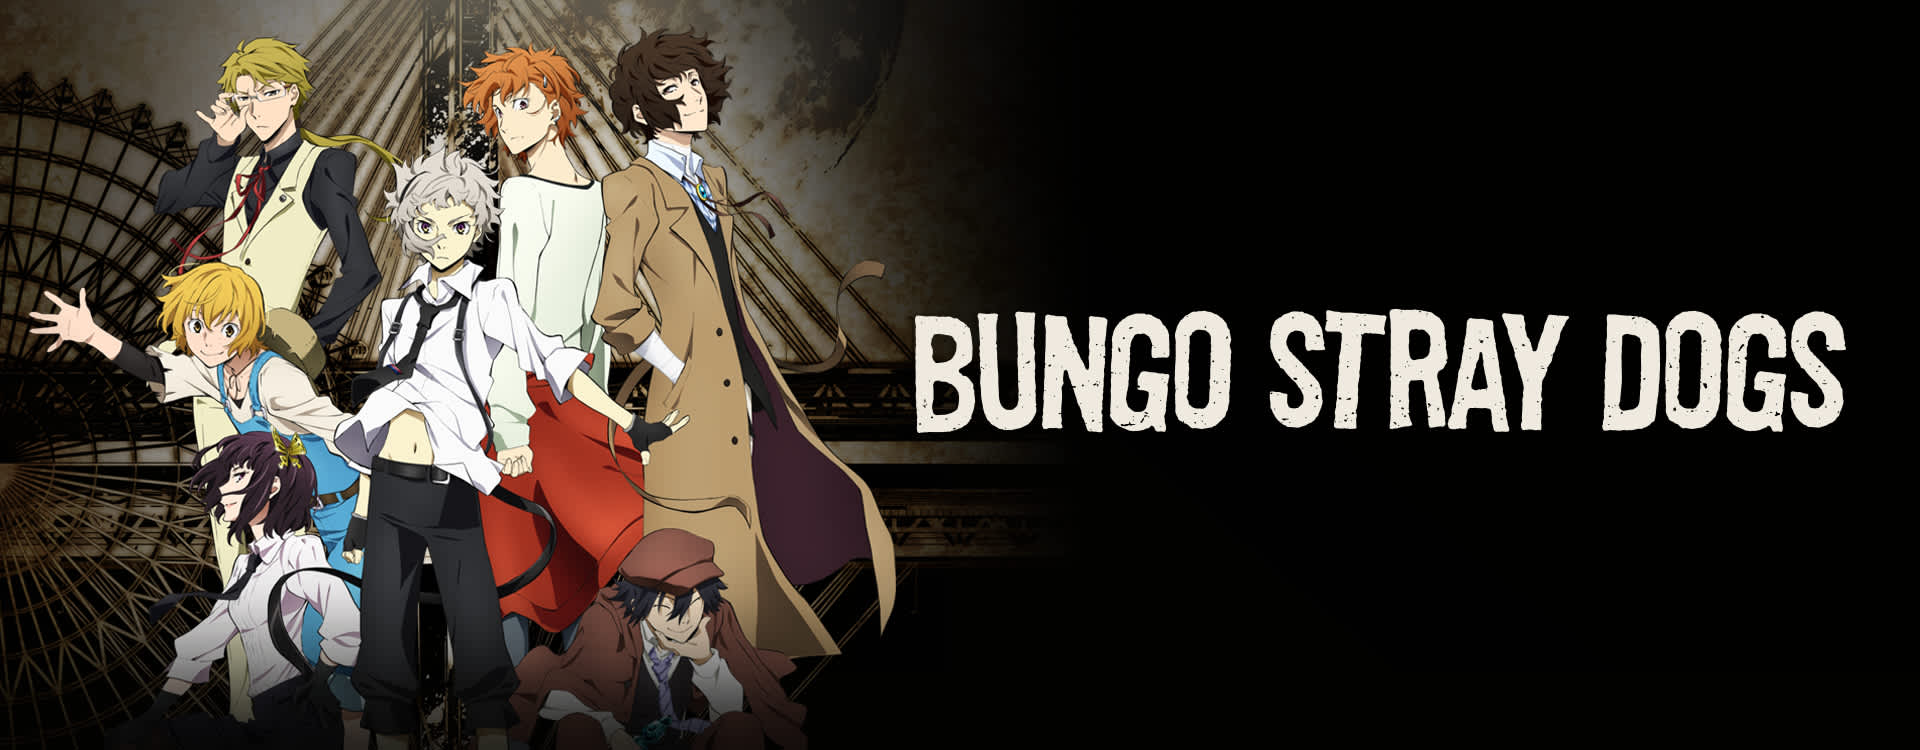 Watch Bungo Stray Dogs Episodes Sub & Dub   Action ...